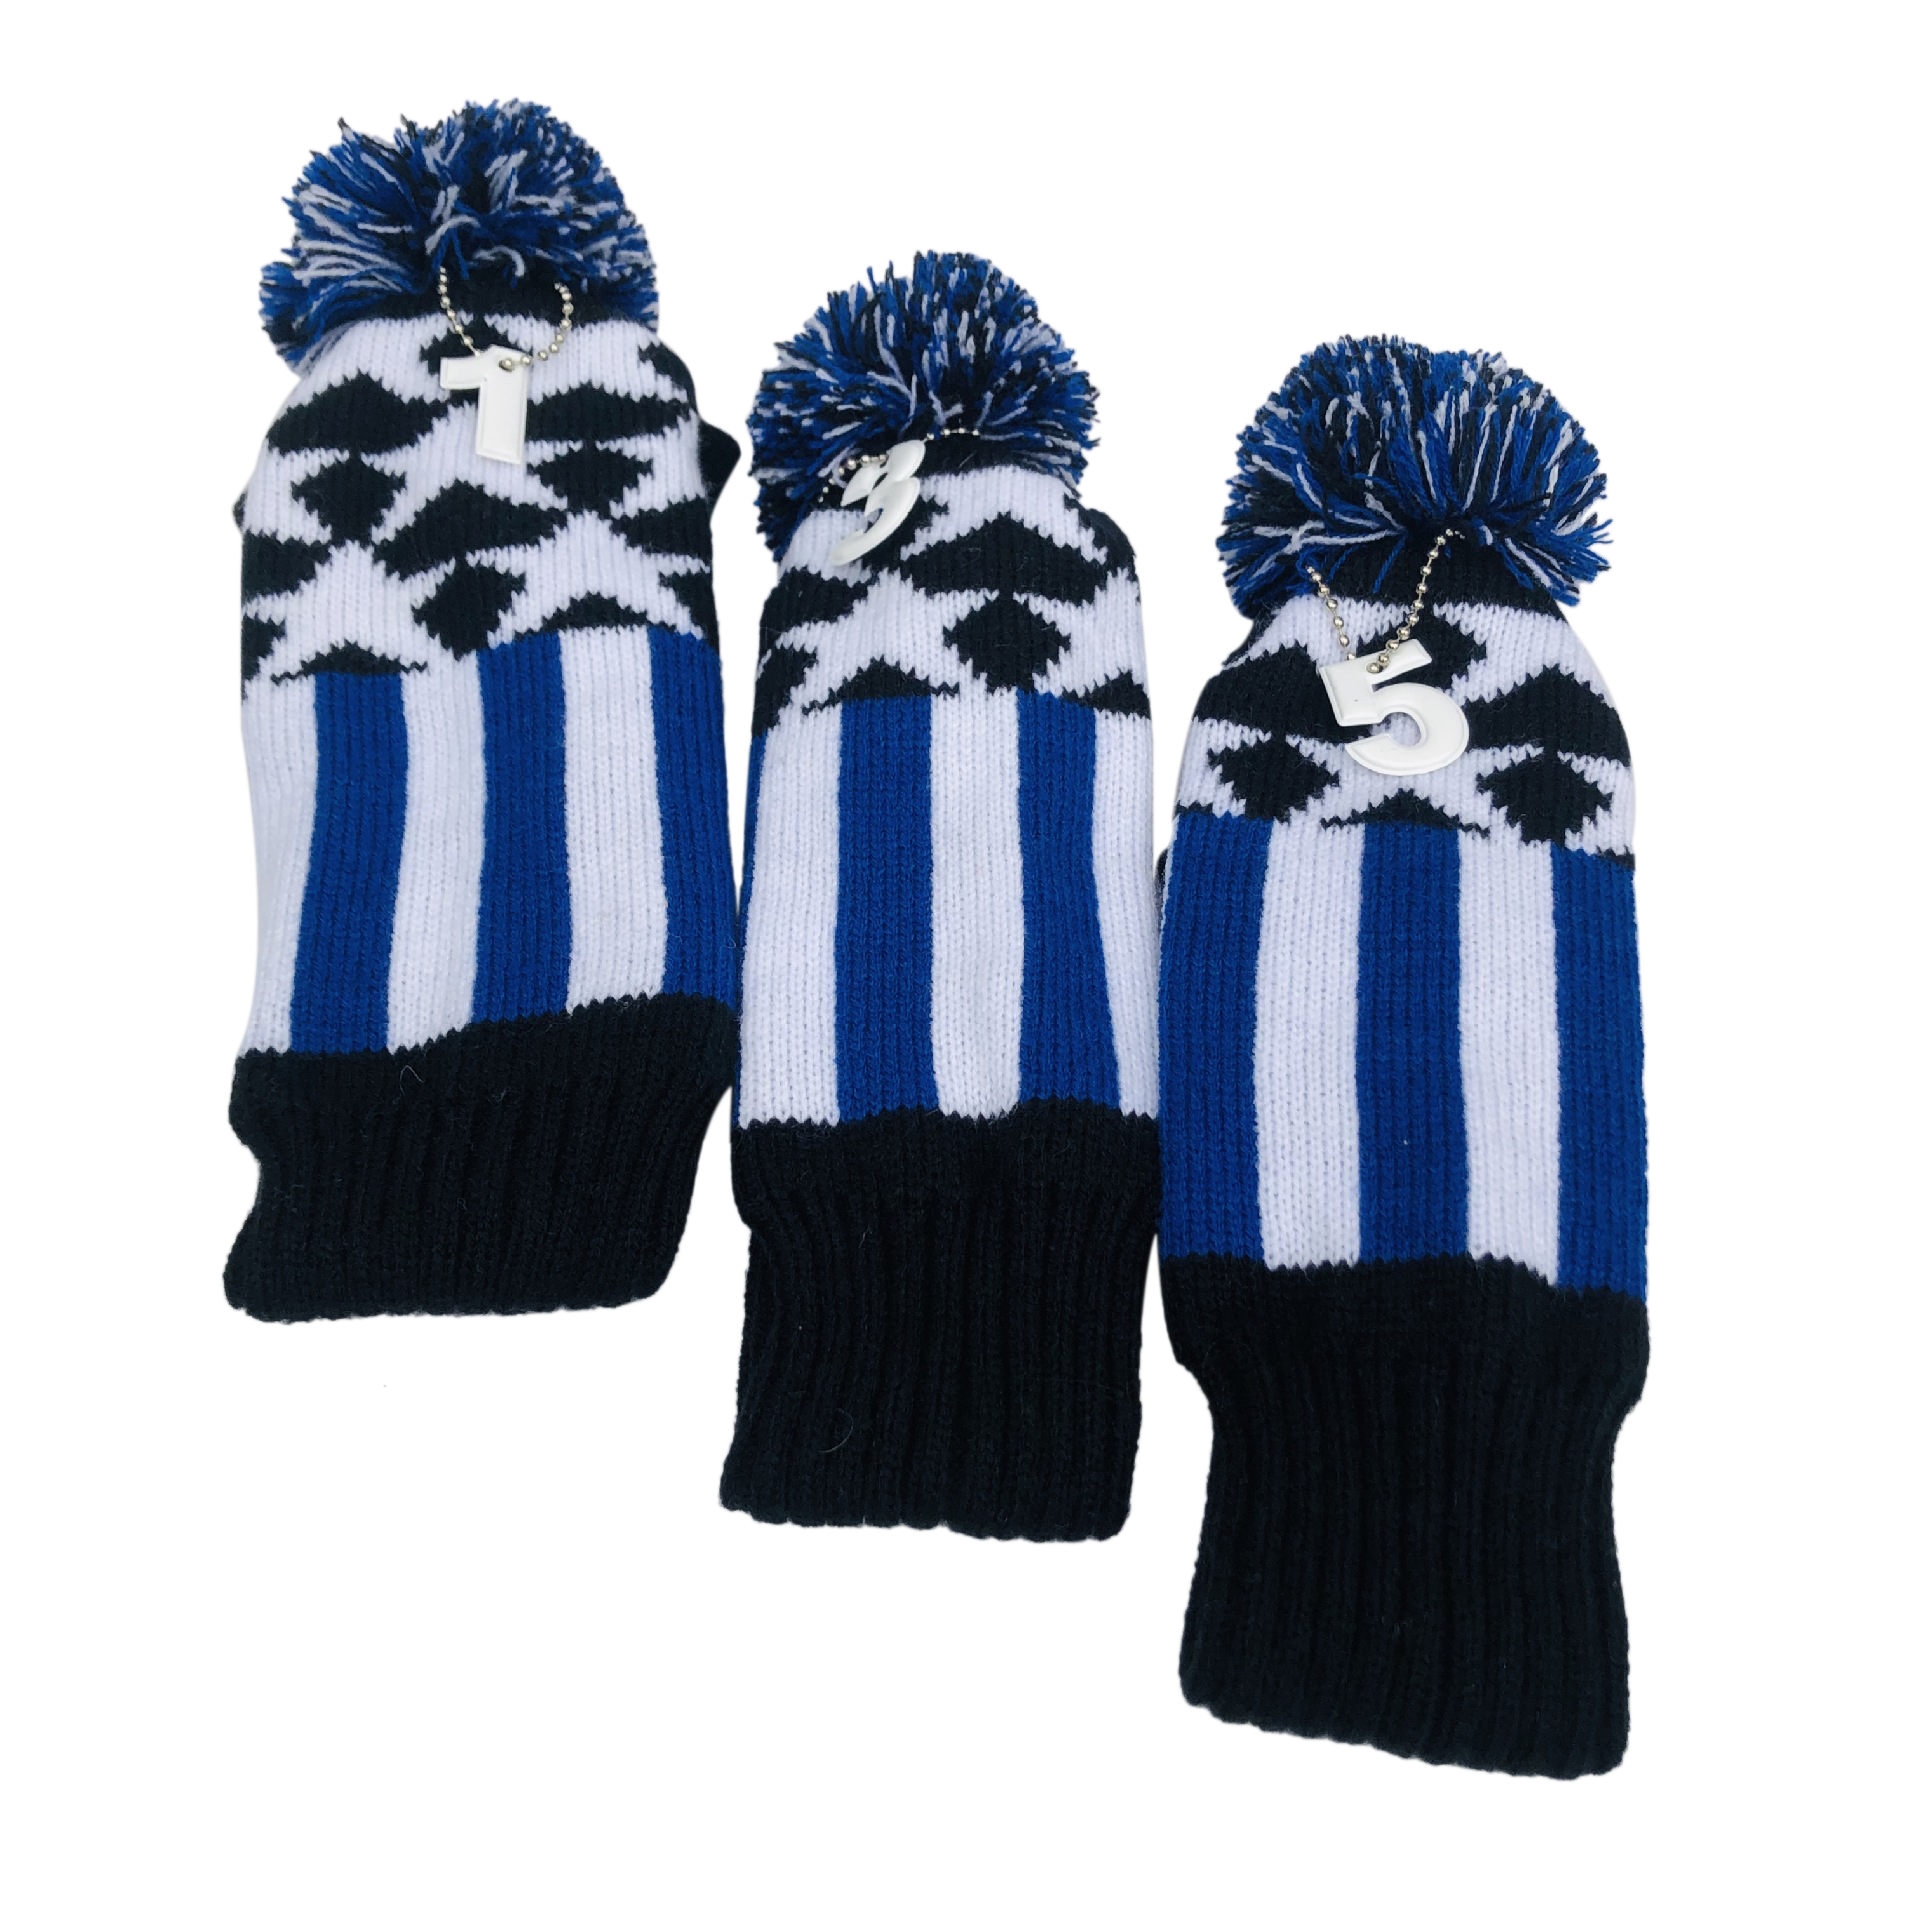 3 Pcs Knitted Golf Headcover Driver Cover, Golf Club Wood Head Covers Fit For Driver Wood, For Male/Female Golfers